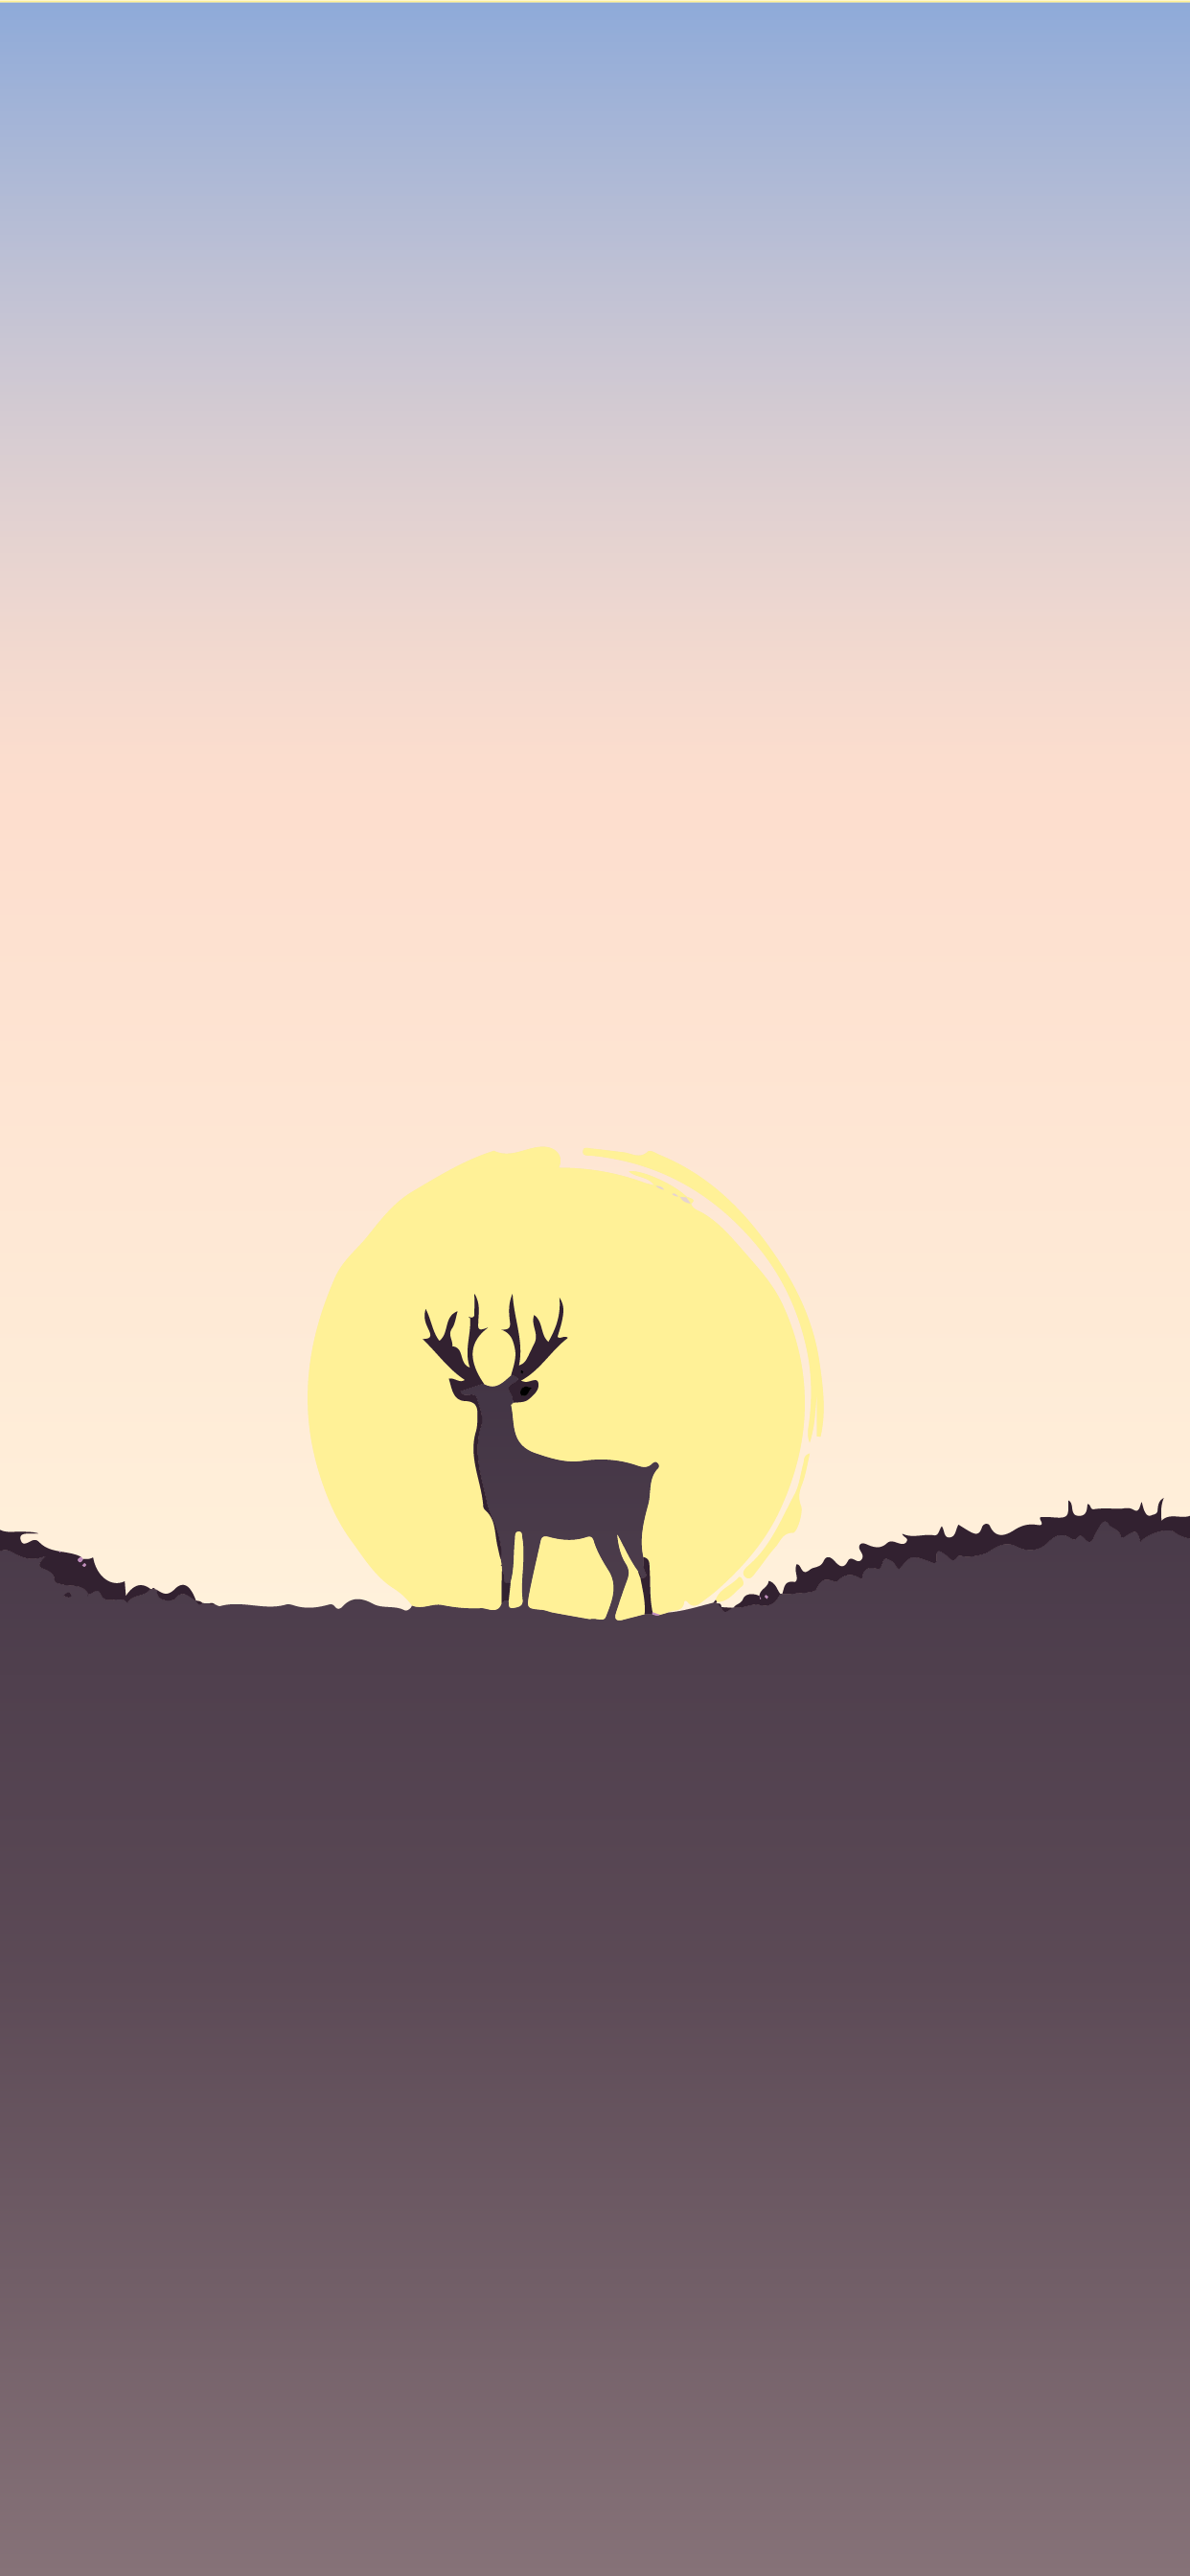 Deer at the sunset cool color wallpaper for mobile phone in hd